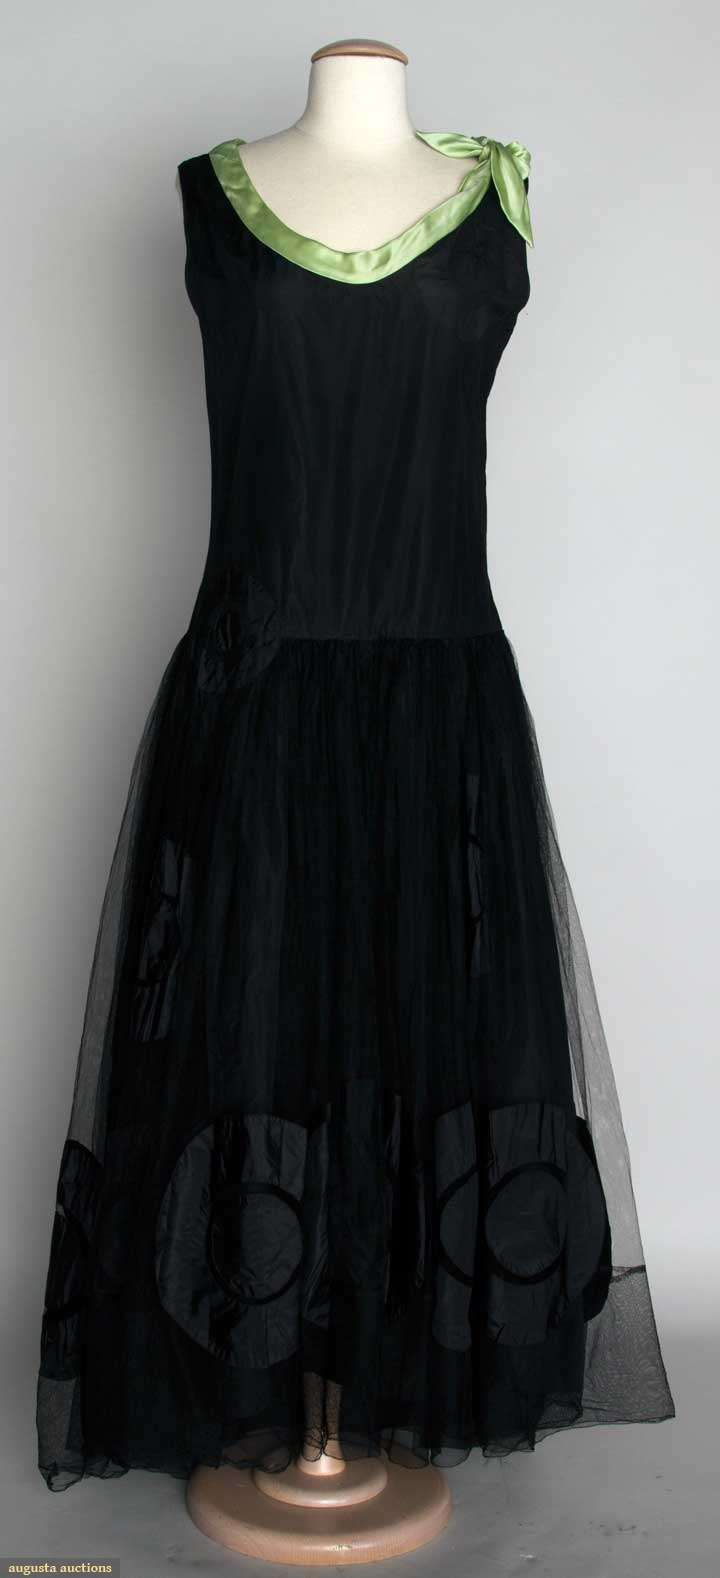 ~Black Silk Robe De Style, 1920s, Augusta Auctions, November 13, 2013 - NYC~